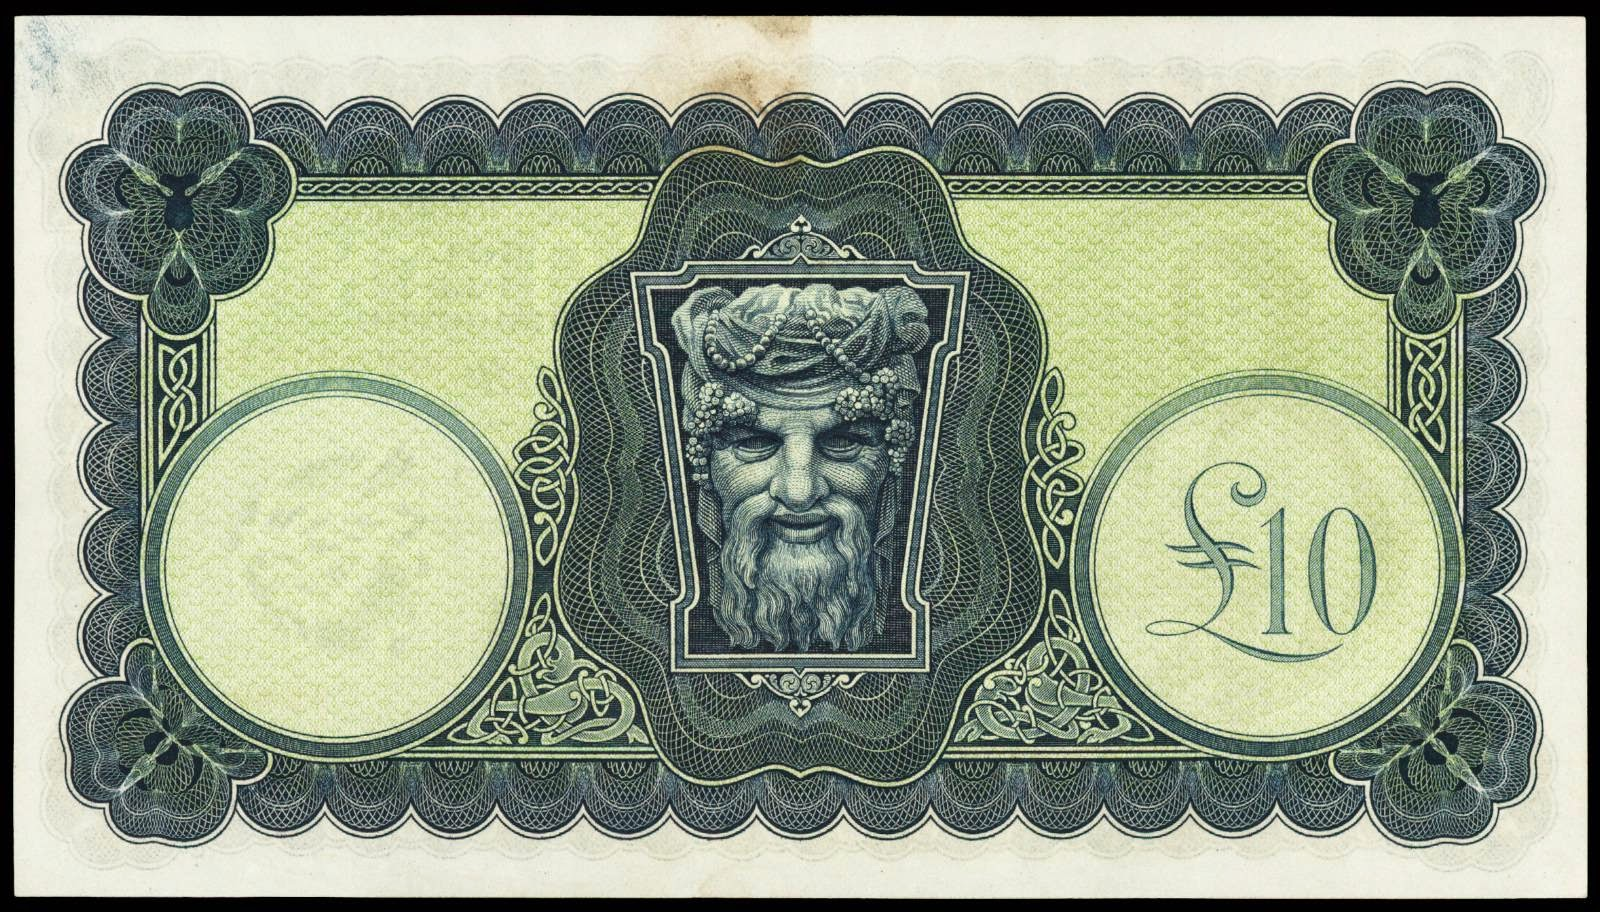 Banknotes of the Republic of Ireland 10 Pounds bill